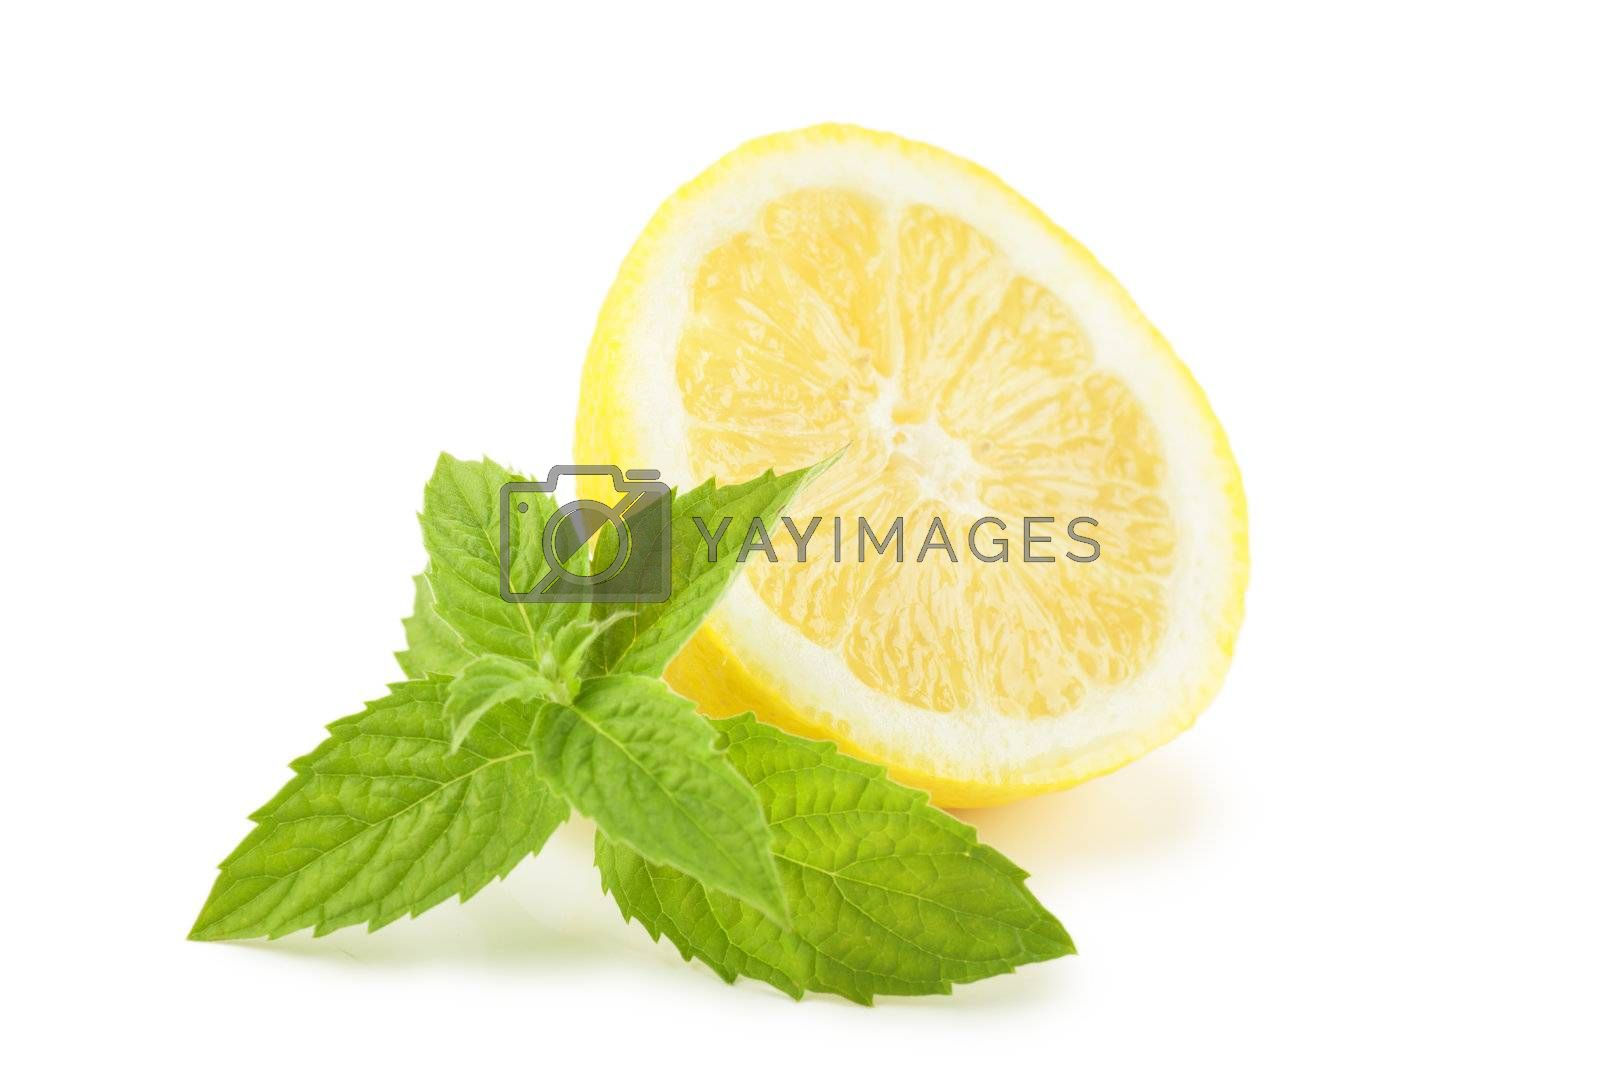 Lemon with mint leaves over white background